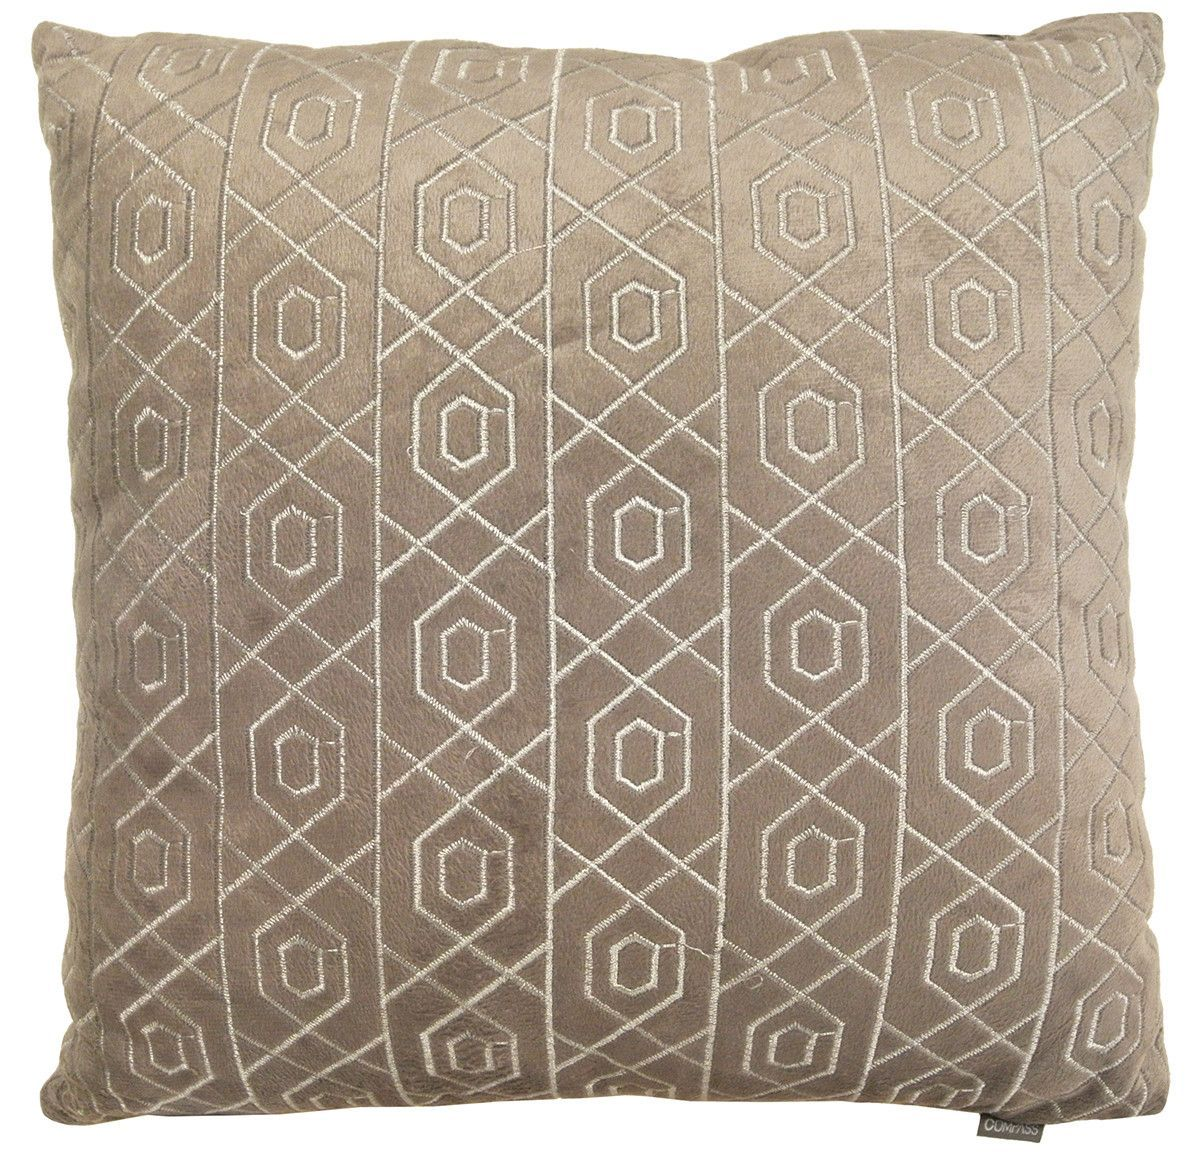 Soft velvet plush fabric embroidered throw pillow products